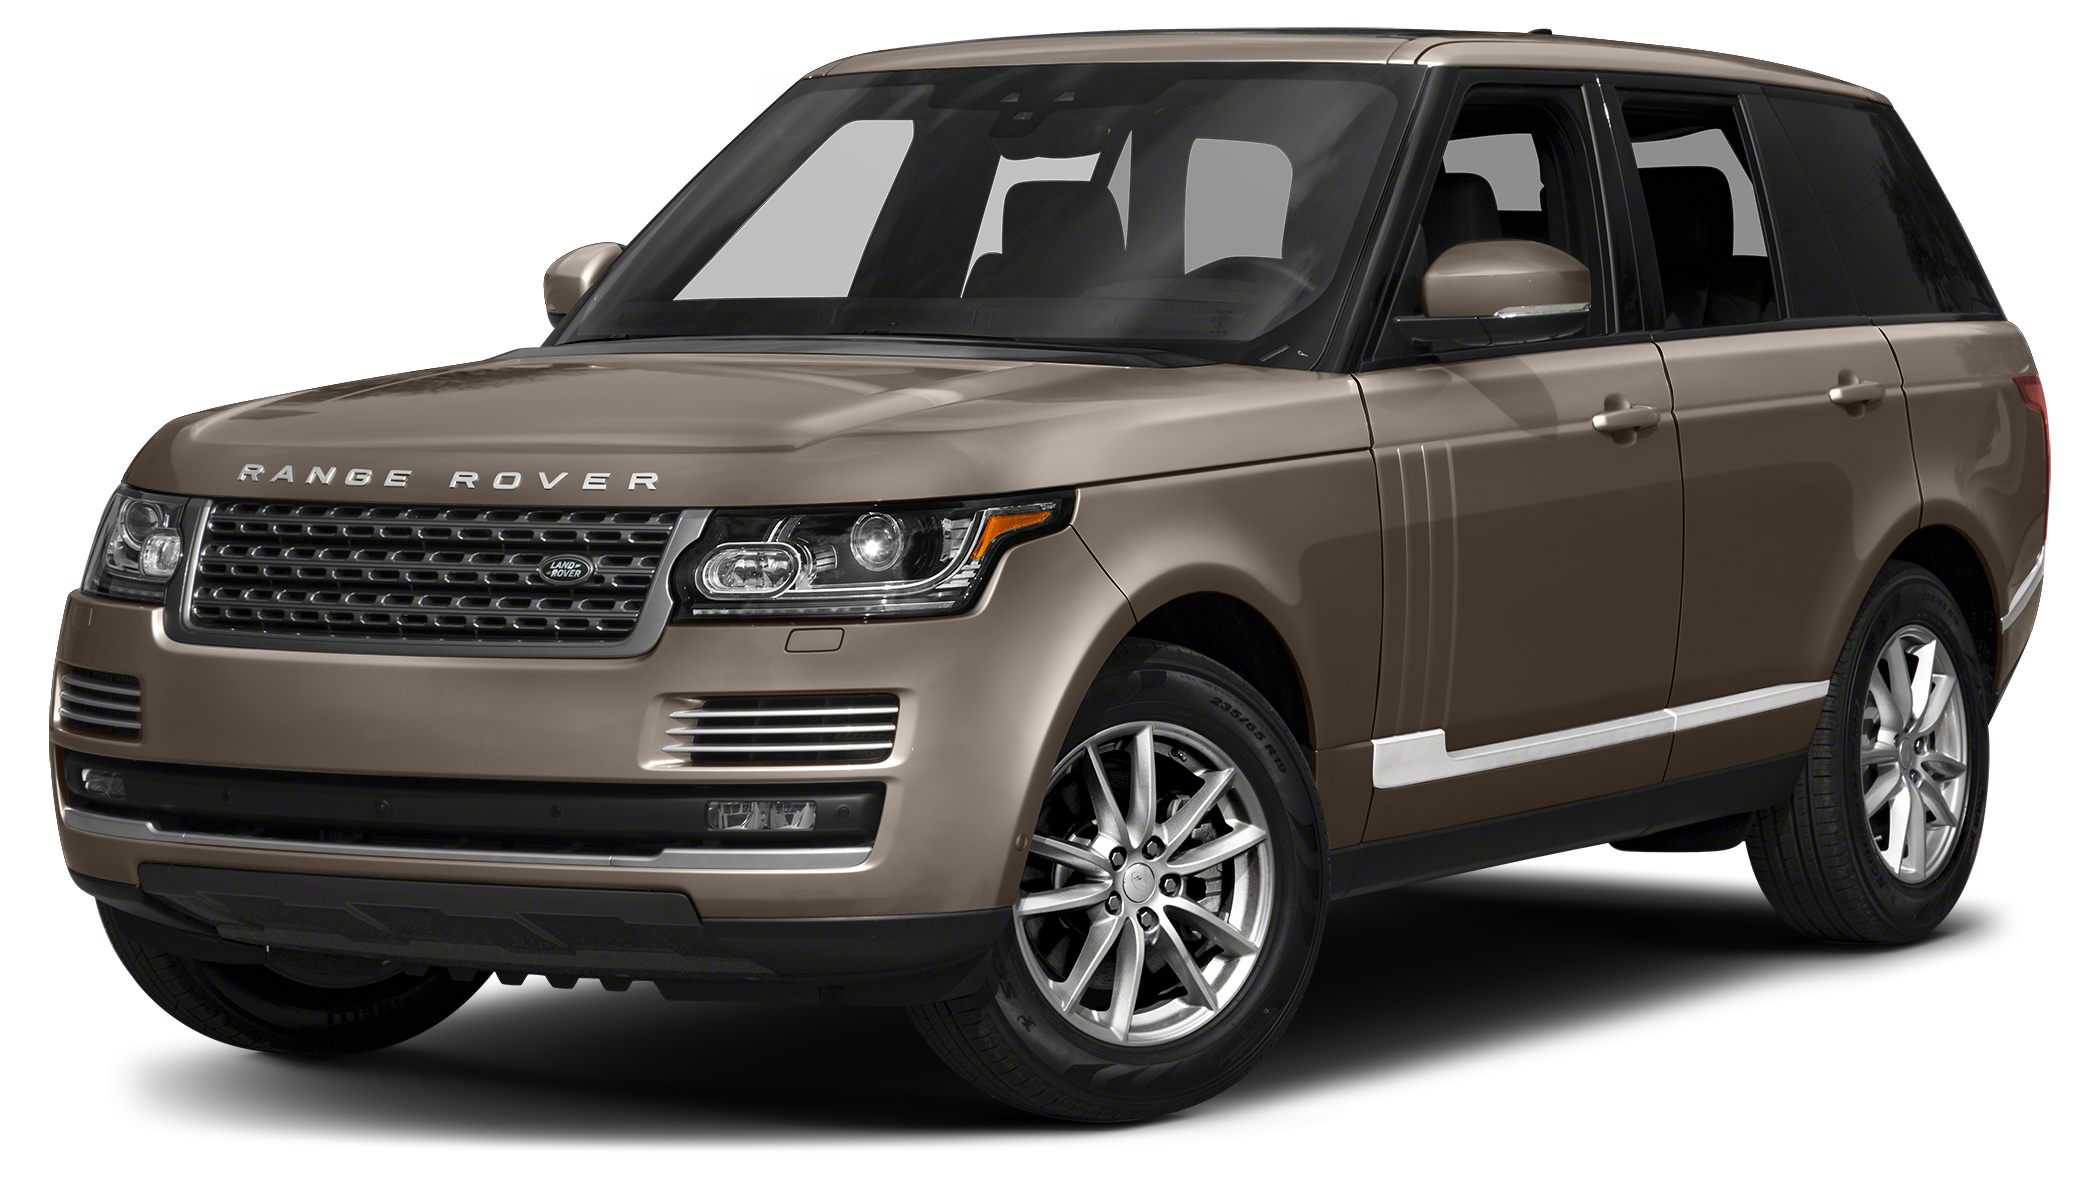 2017 LAND ROVER RANGE ROVER for Sale in Vienna VA